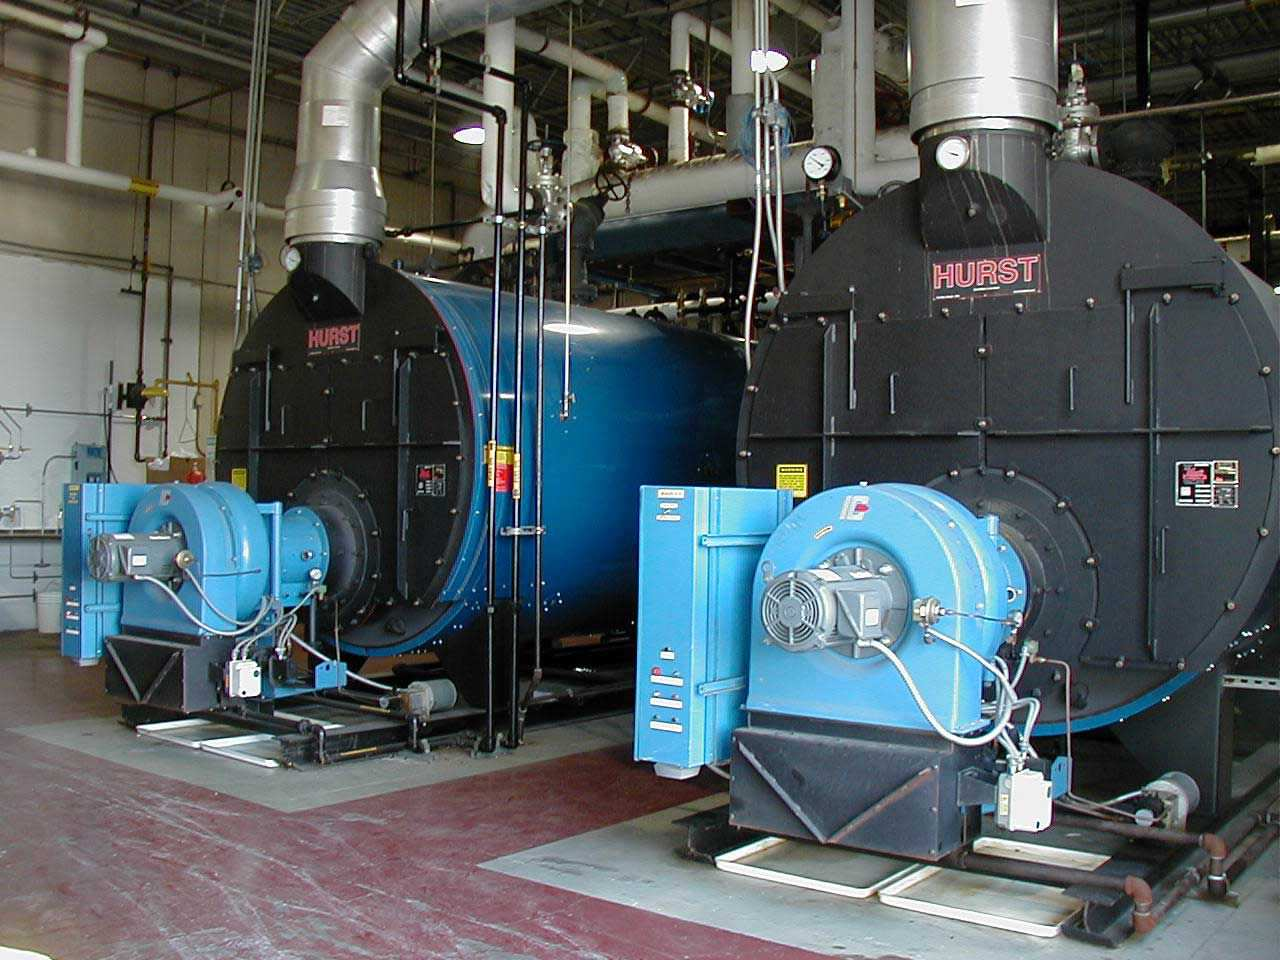 BOILER: OPERATION, MAINTENANCE & TROUBLESHOOTING